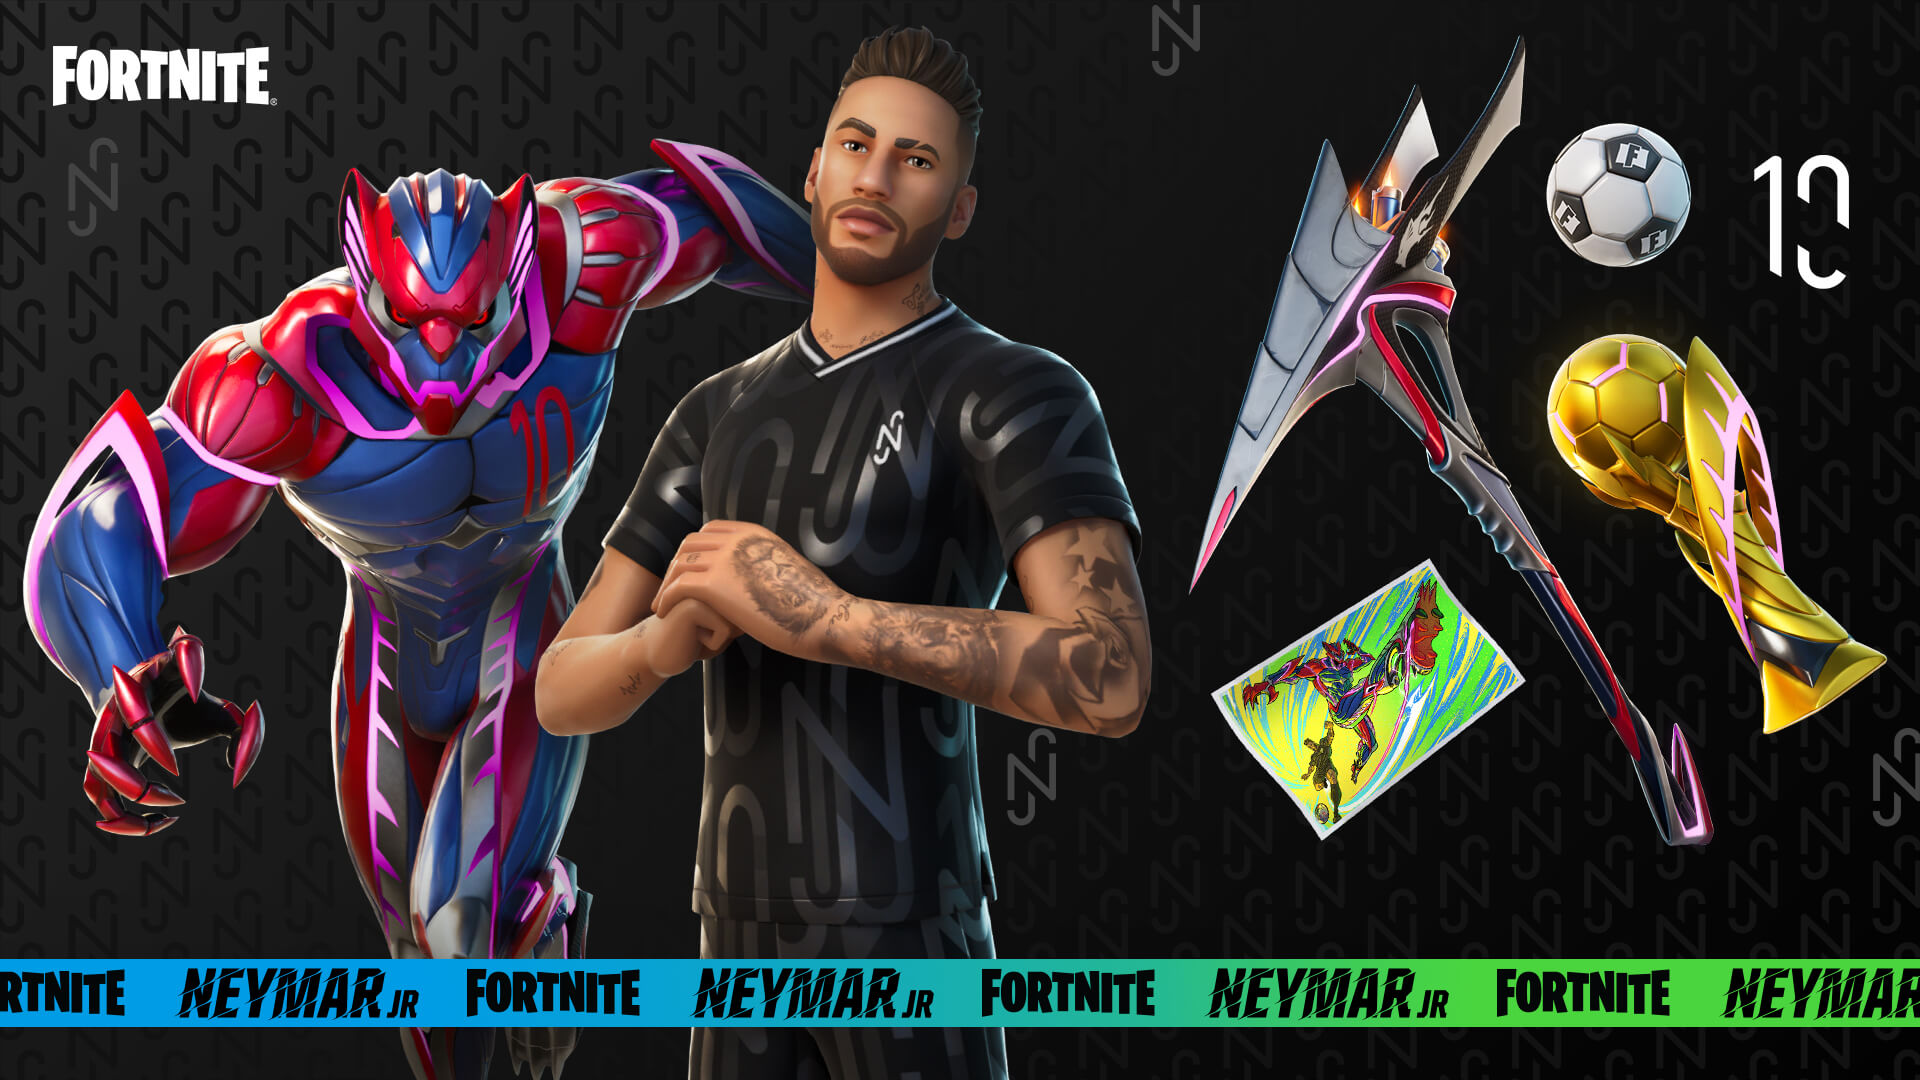 Fortnite Neymar Jr Rewards